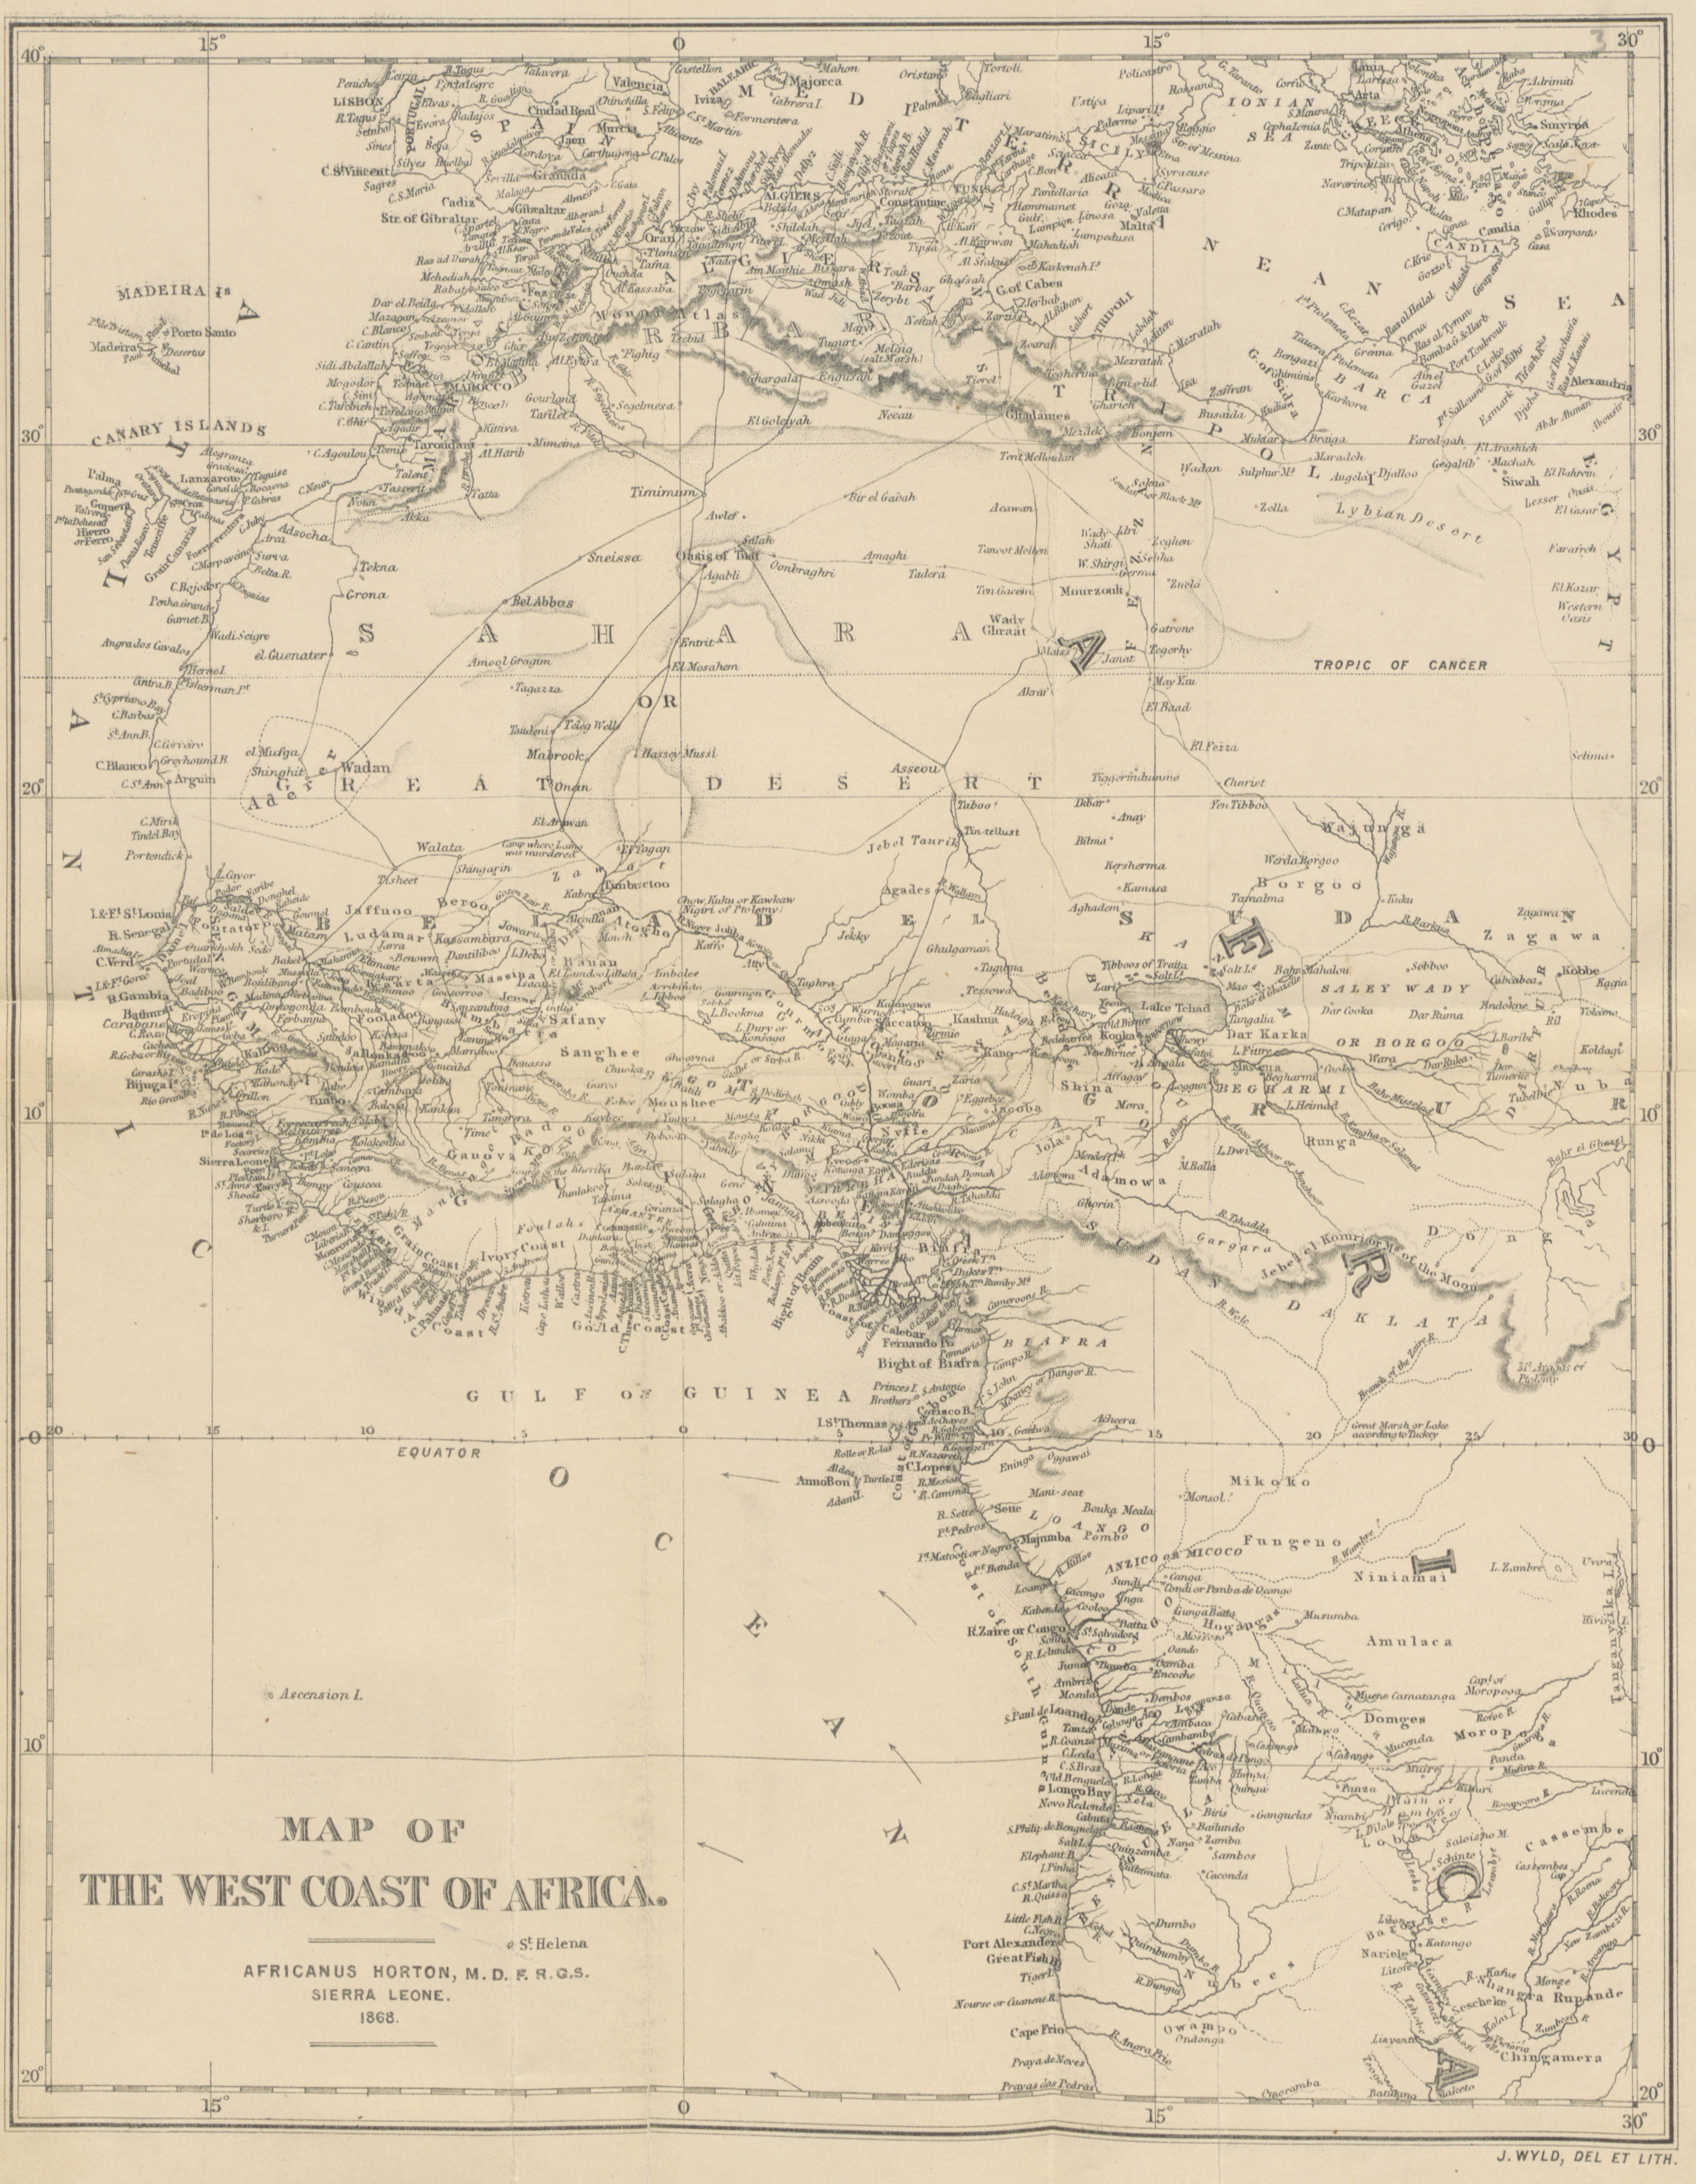 File1868 MAP OF THE WEST COAST OF AFRICA by Africanus Horton